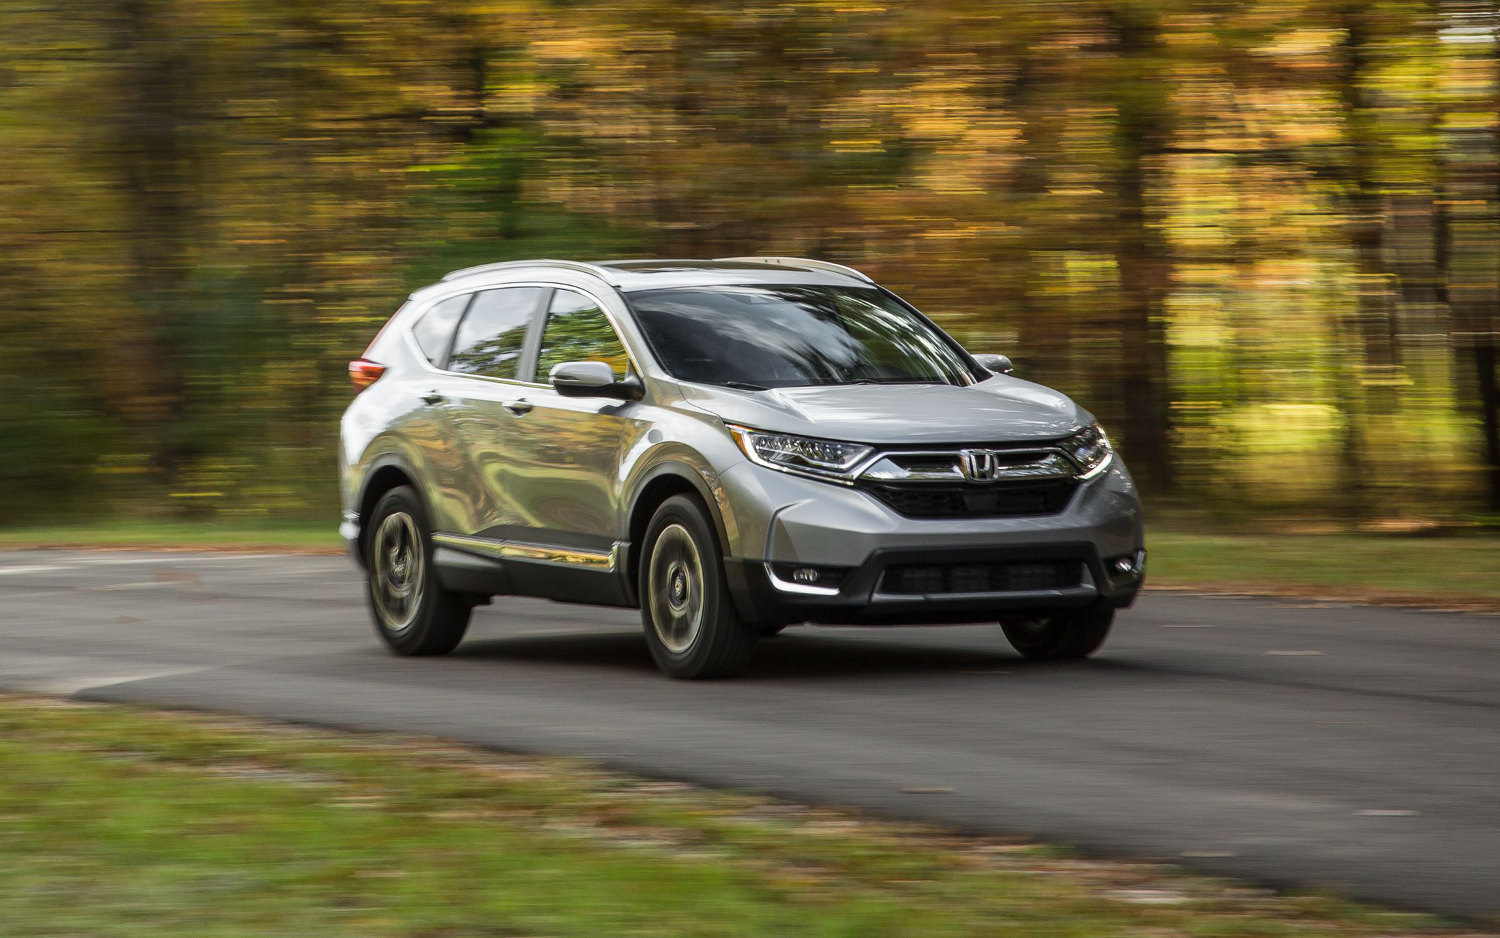 Rdx Vs Crv >> Comparison - Honda CR-V EX-L 2018 - vs - Infiniti QX50 ...